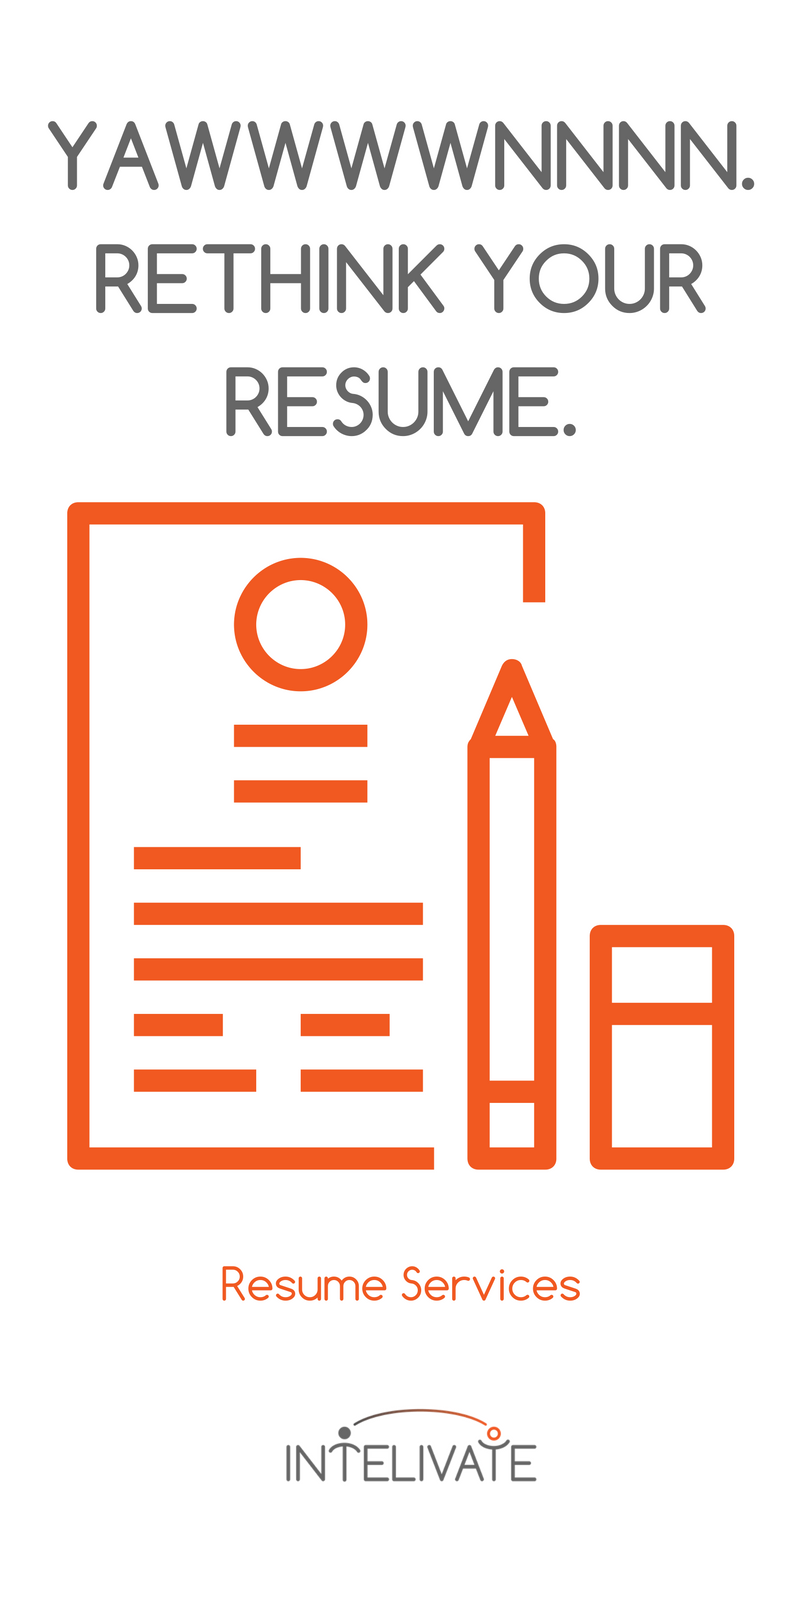 resume Resume Services resume services rethink your intelivate services